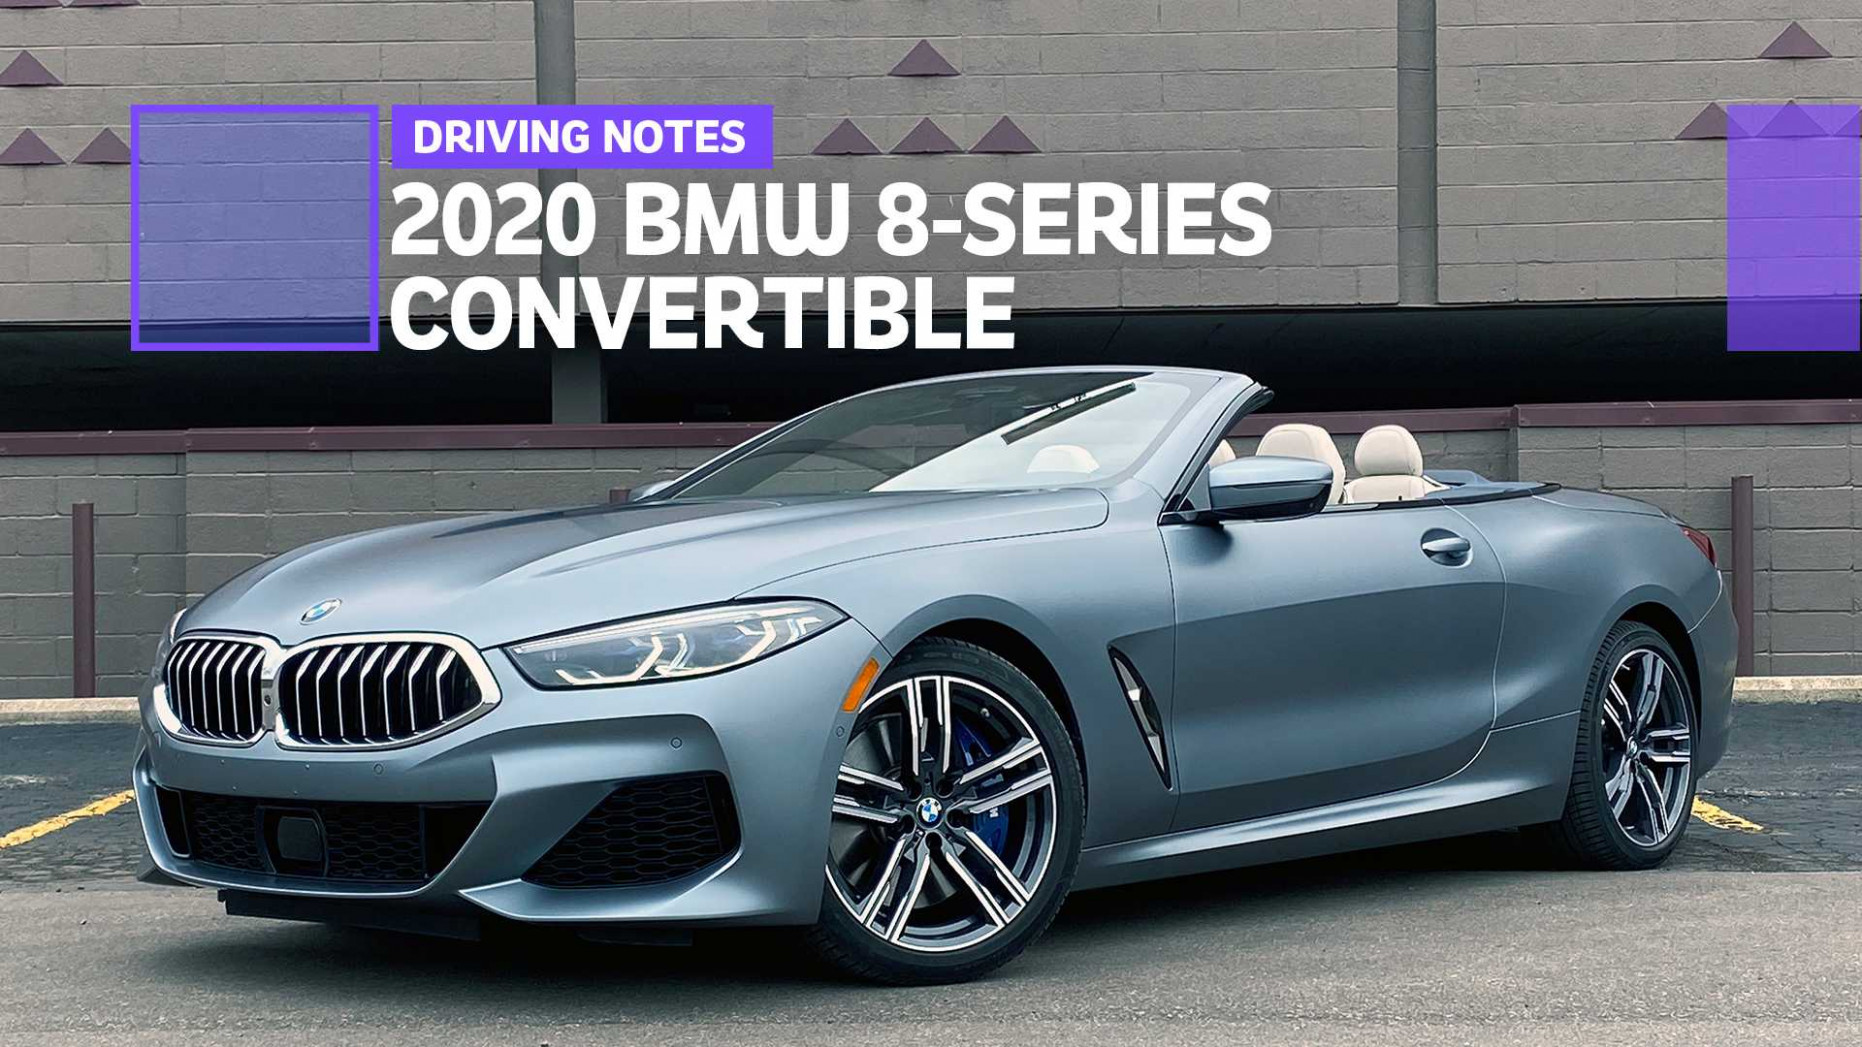 4 BMW 4i Convertible Driving Notes: Capable Cruiser | 2020 BMW Convertible